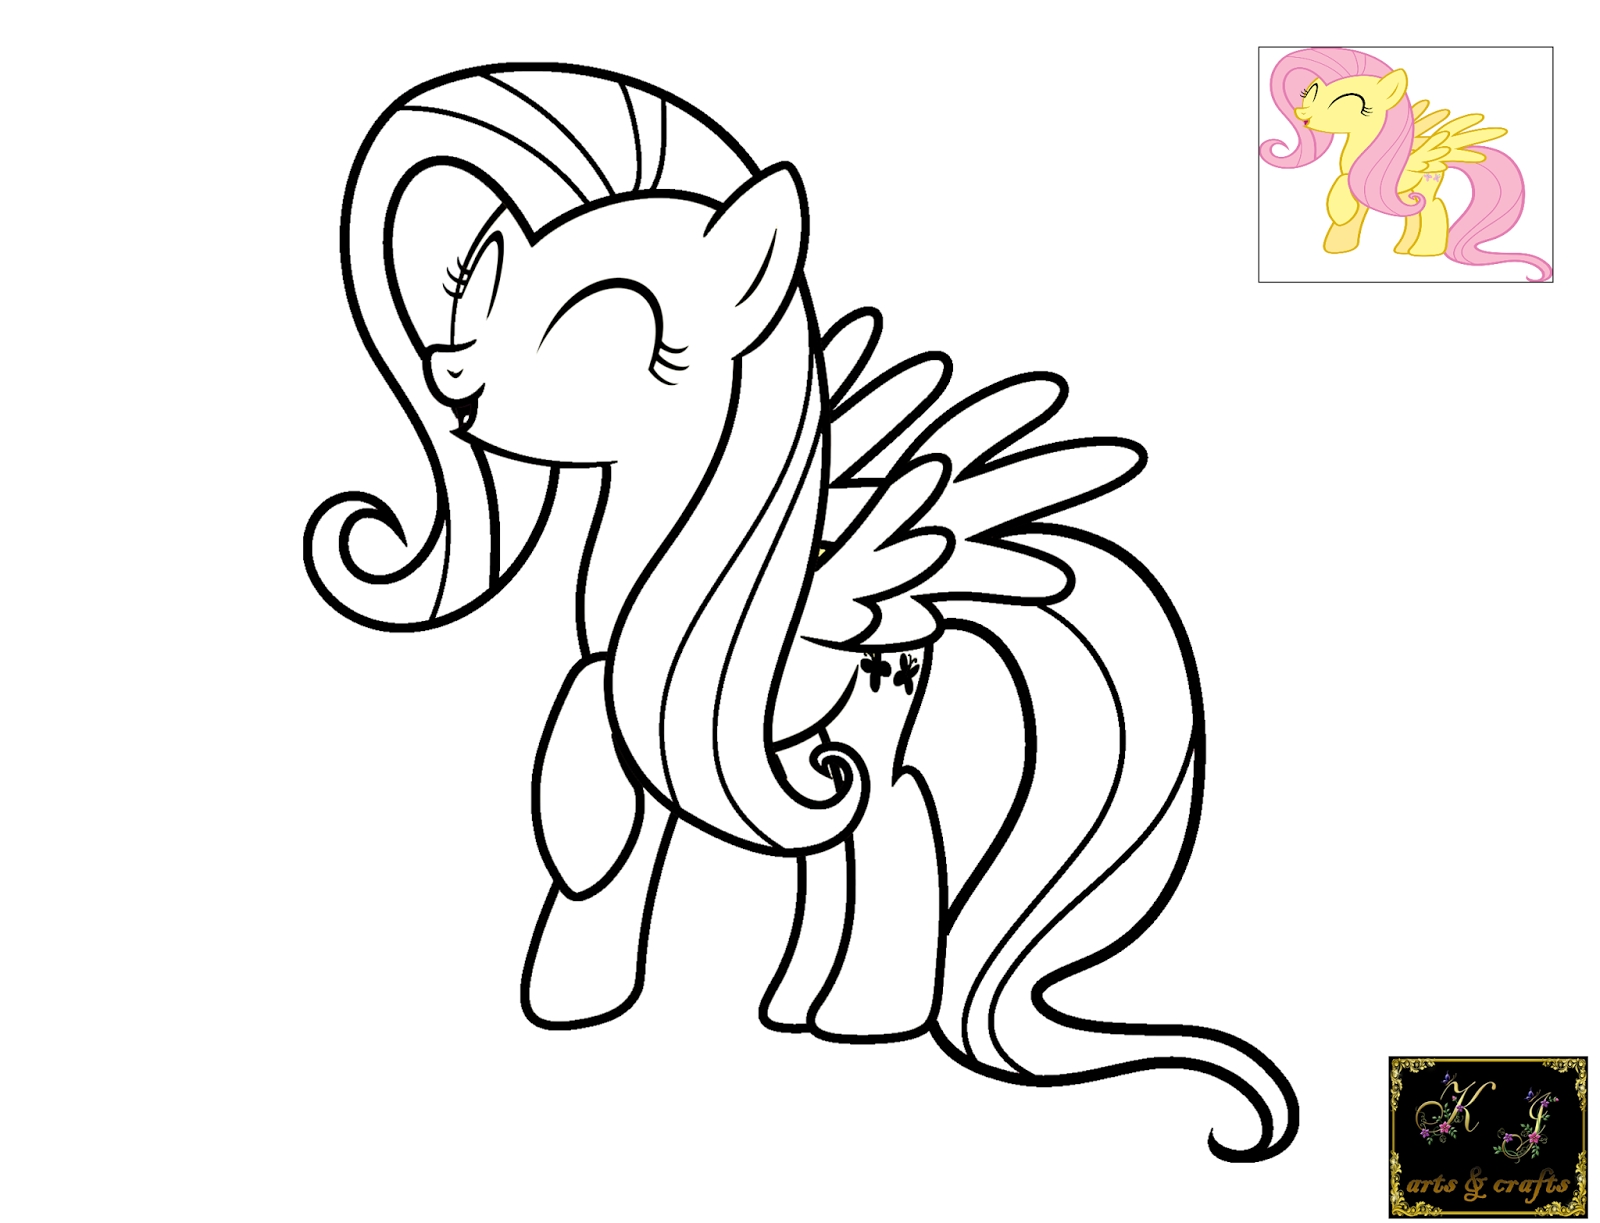 21 Fluttershy Coloring Pages Compilation | FREE COLORING PAGES - Part 2